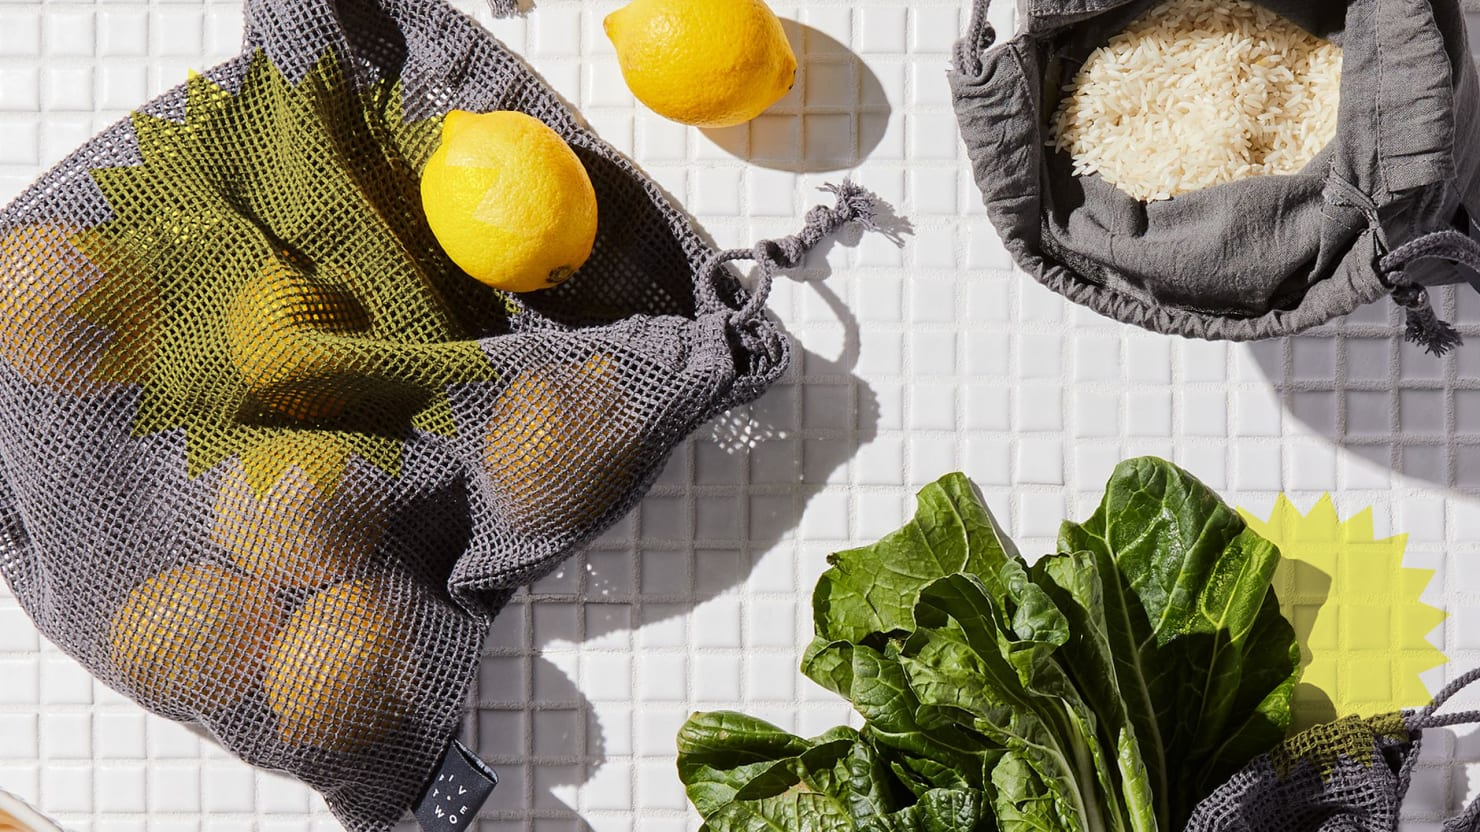 Food 52 Bags of Reusable Products Organize Your Refrigerator and Save Plastic